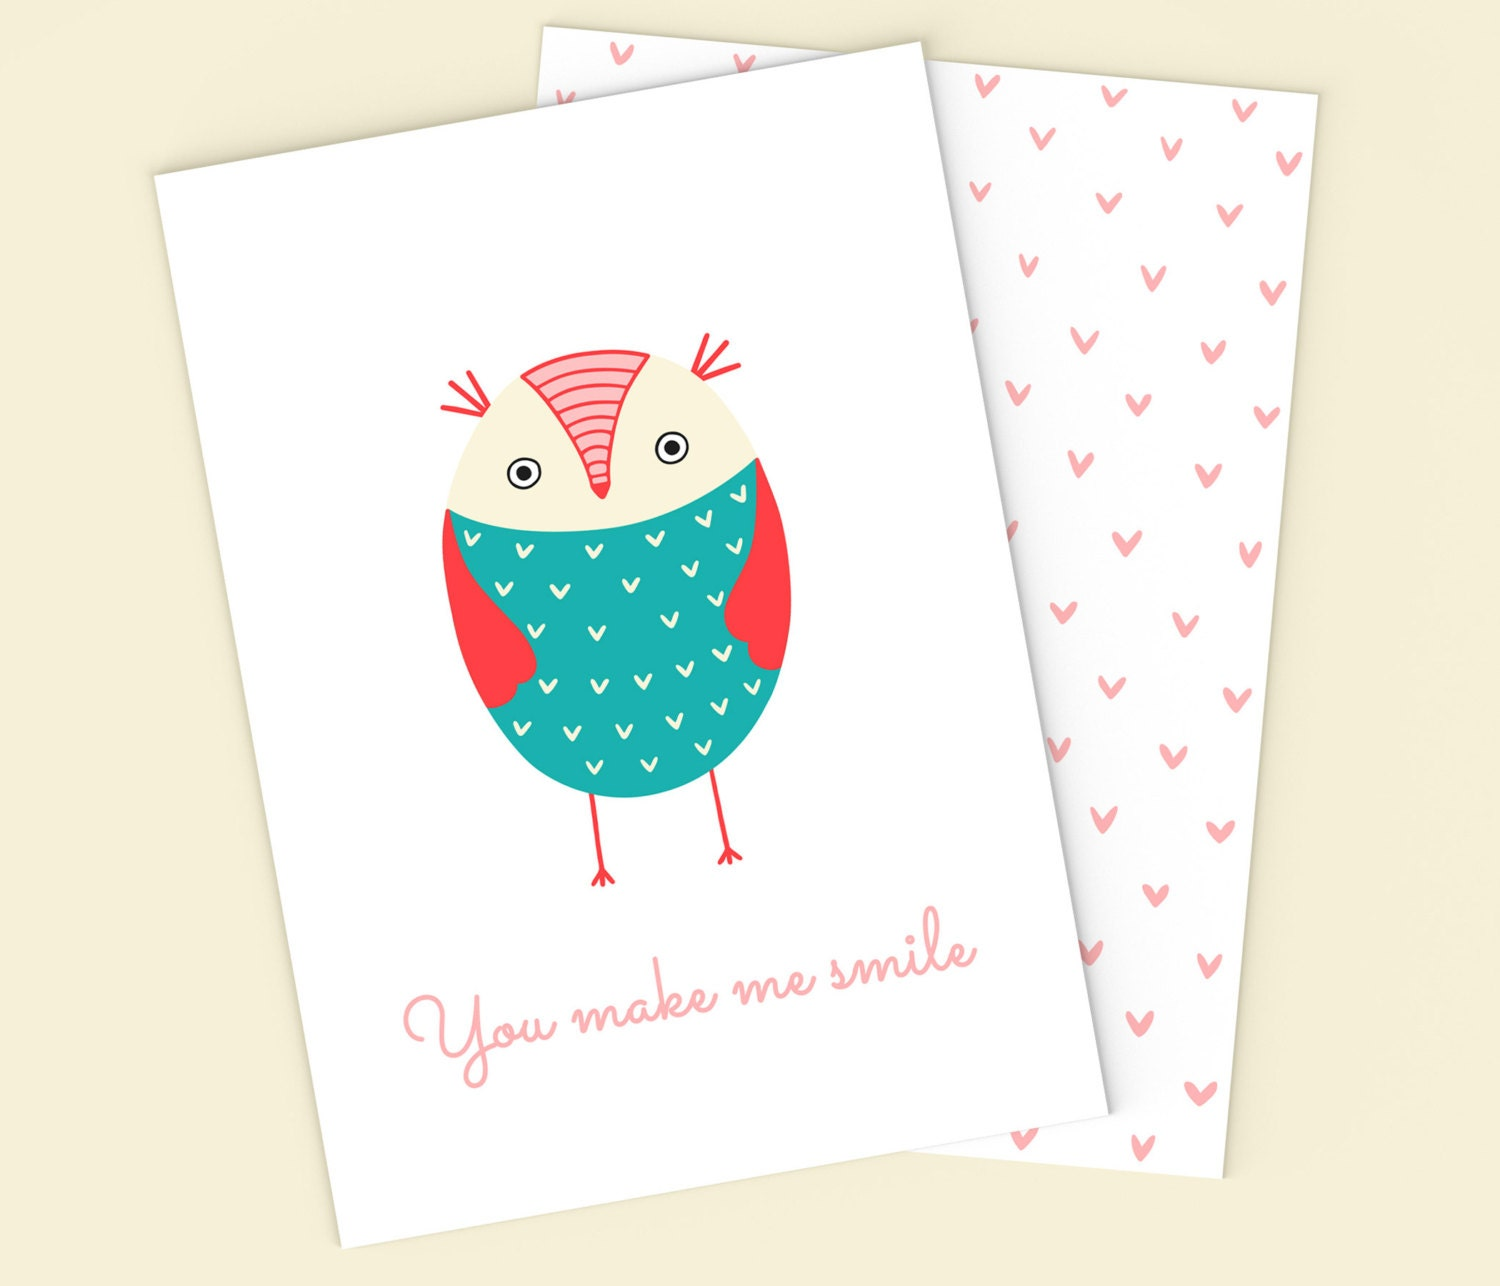 Awesome owl birthday cards pics laughterisaleap printable owl card digital owl blank card printable bookmarktalkfo Image collections